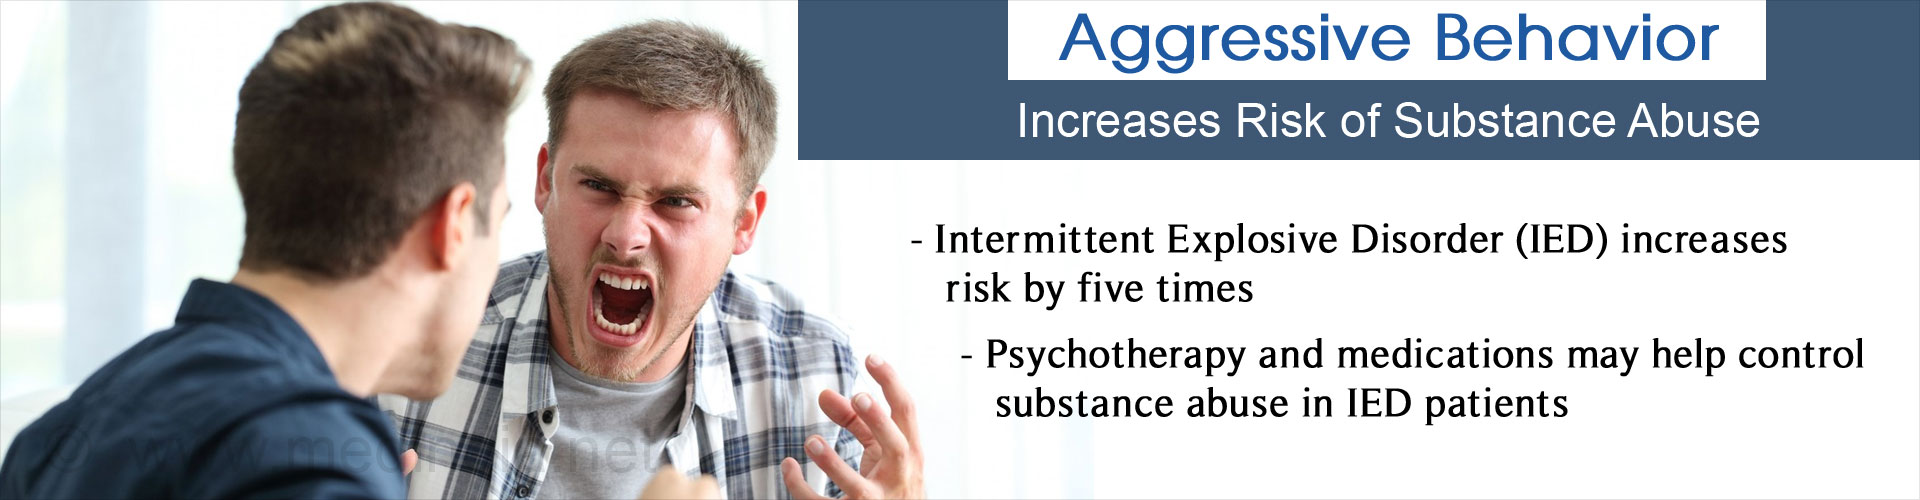 Aggressive Behavior Increases Risk of Substance Abuse Later in Life